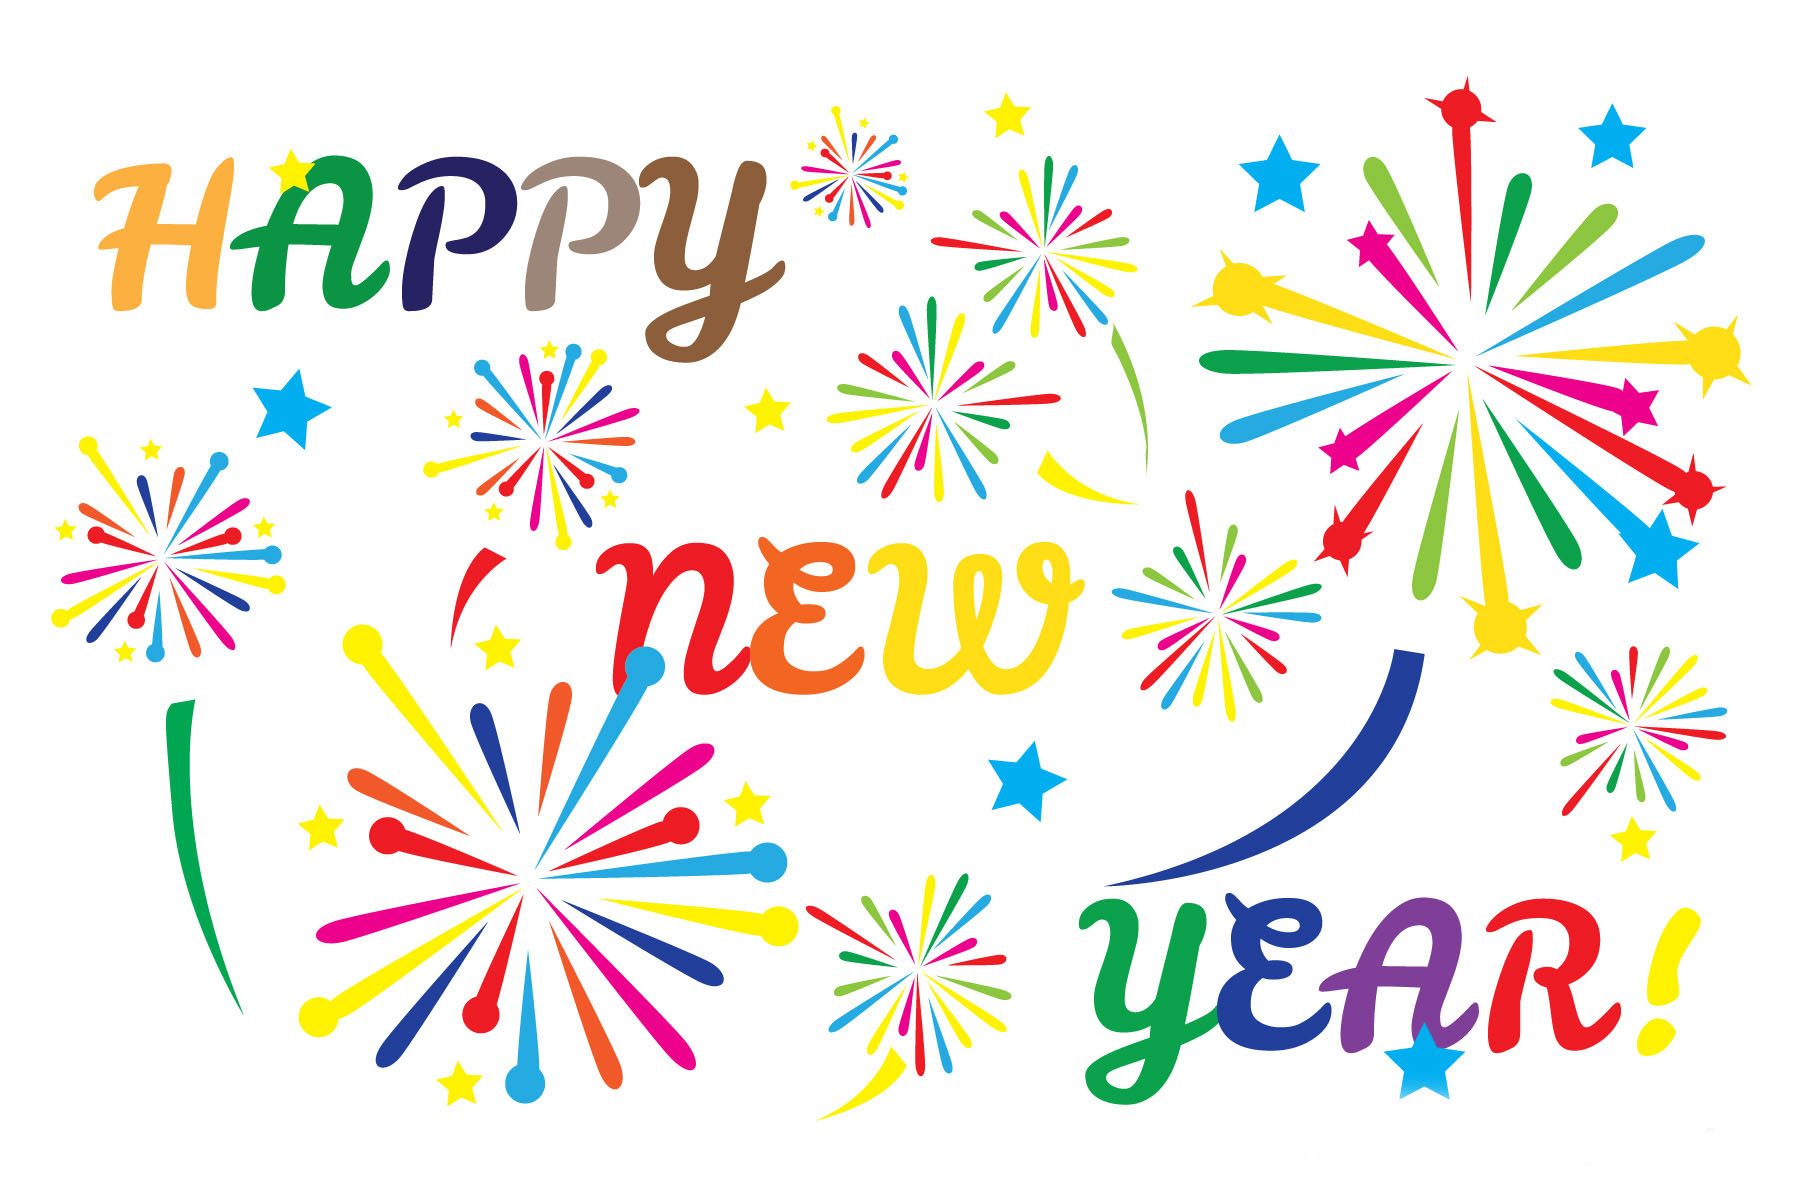 Free happy new year clipart pictures.